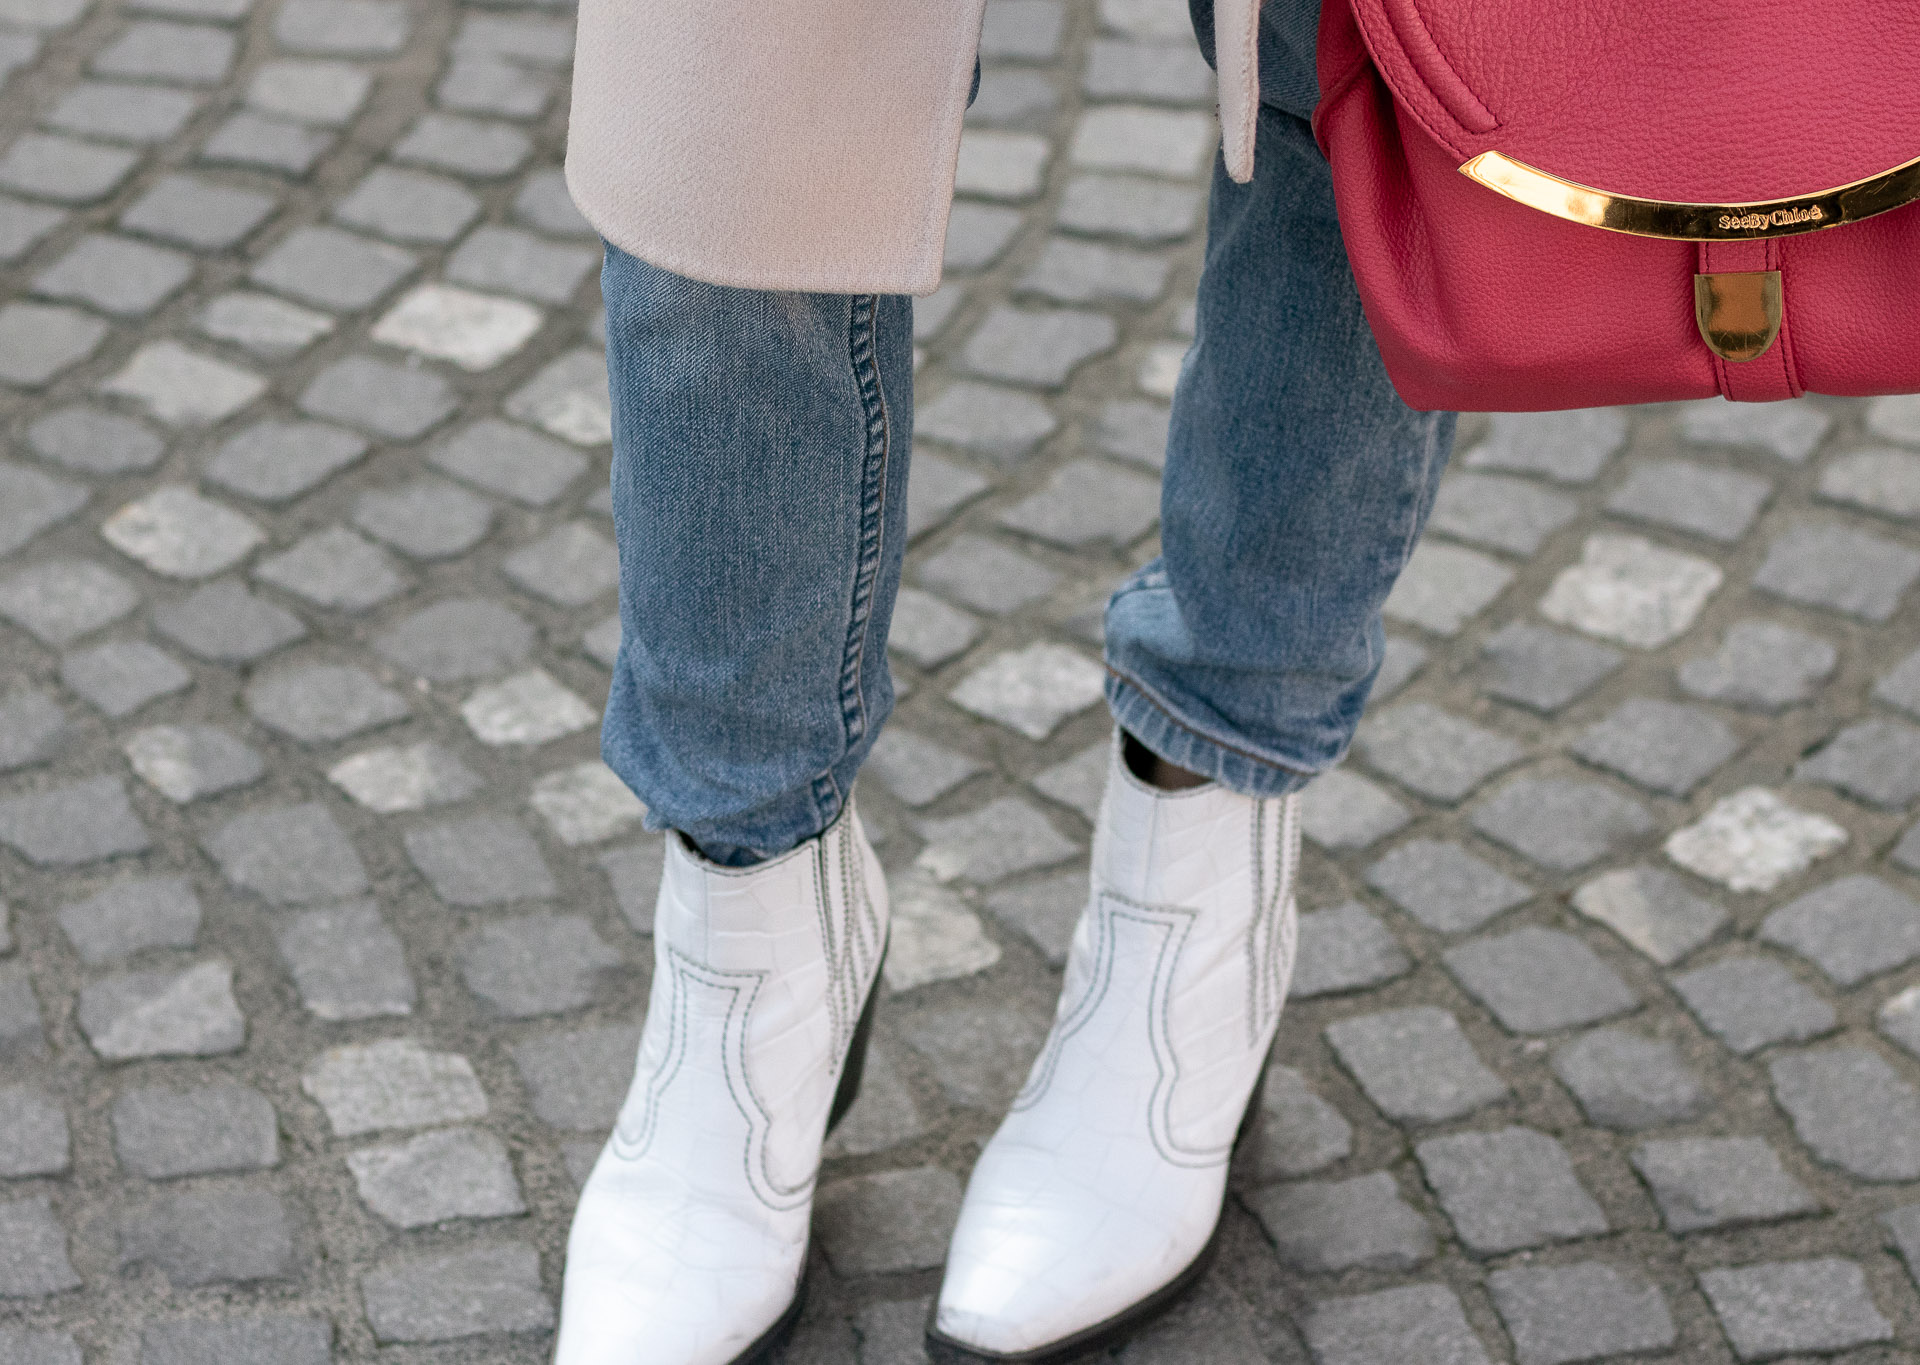 Brunette from Wall Street ganni boots washed denim jeans